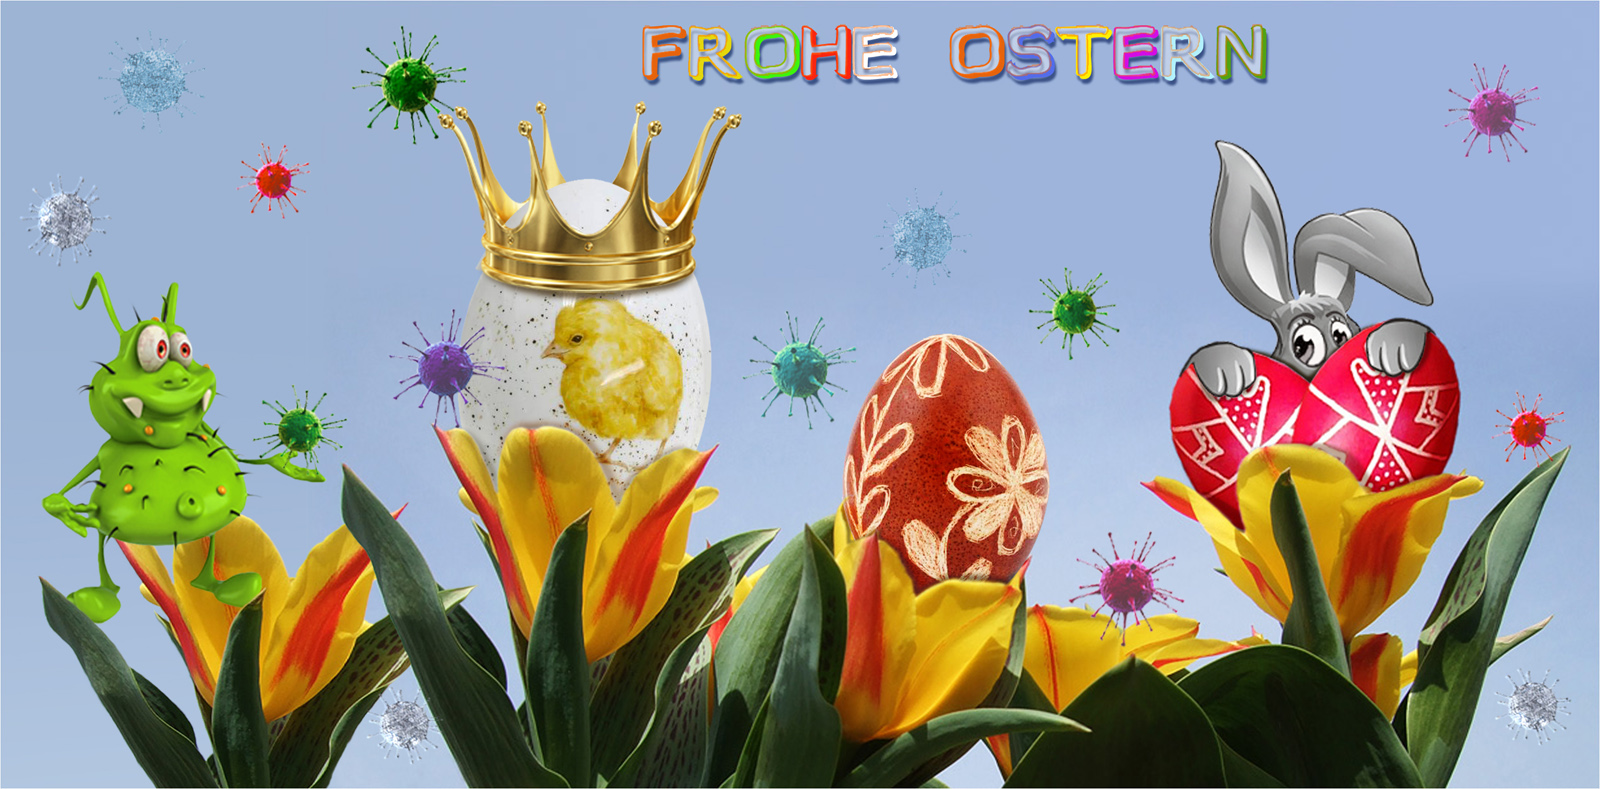 Frohe_Osterntage